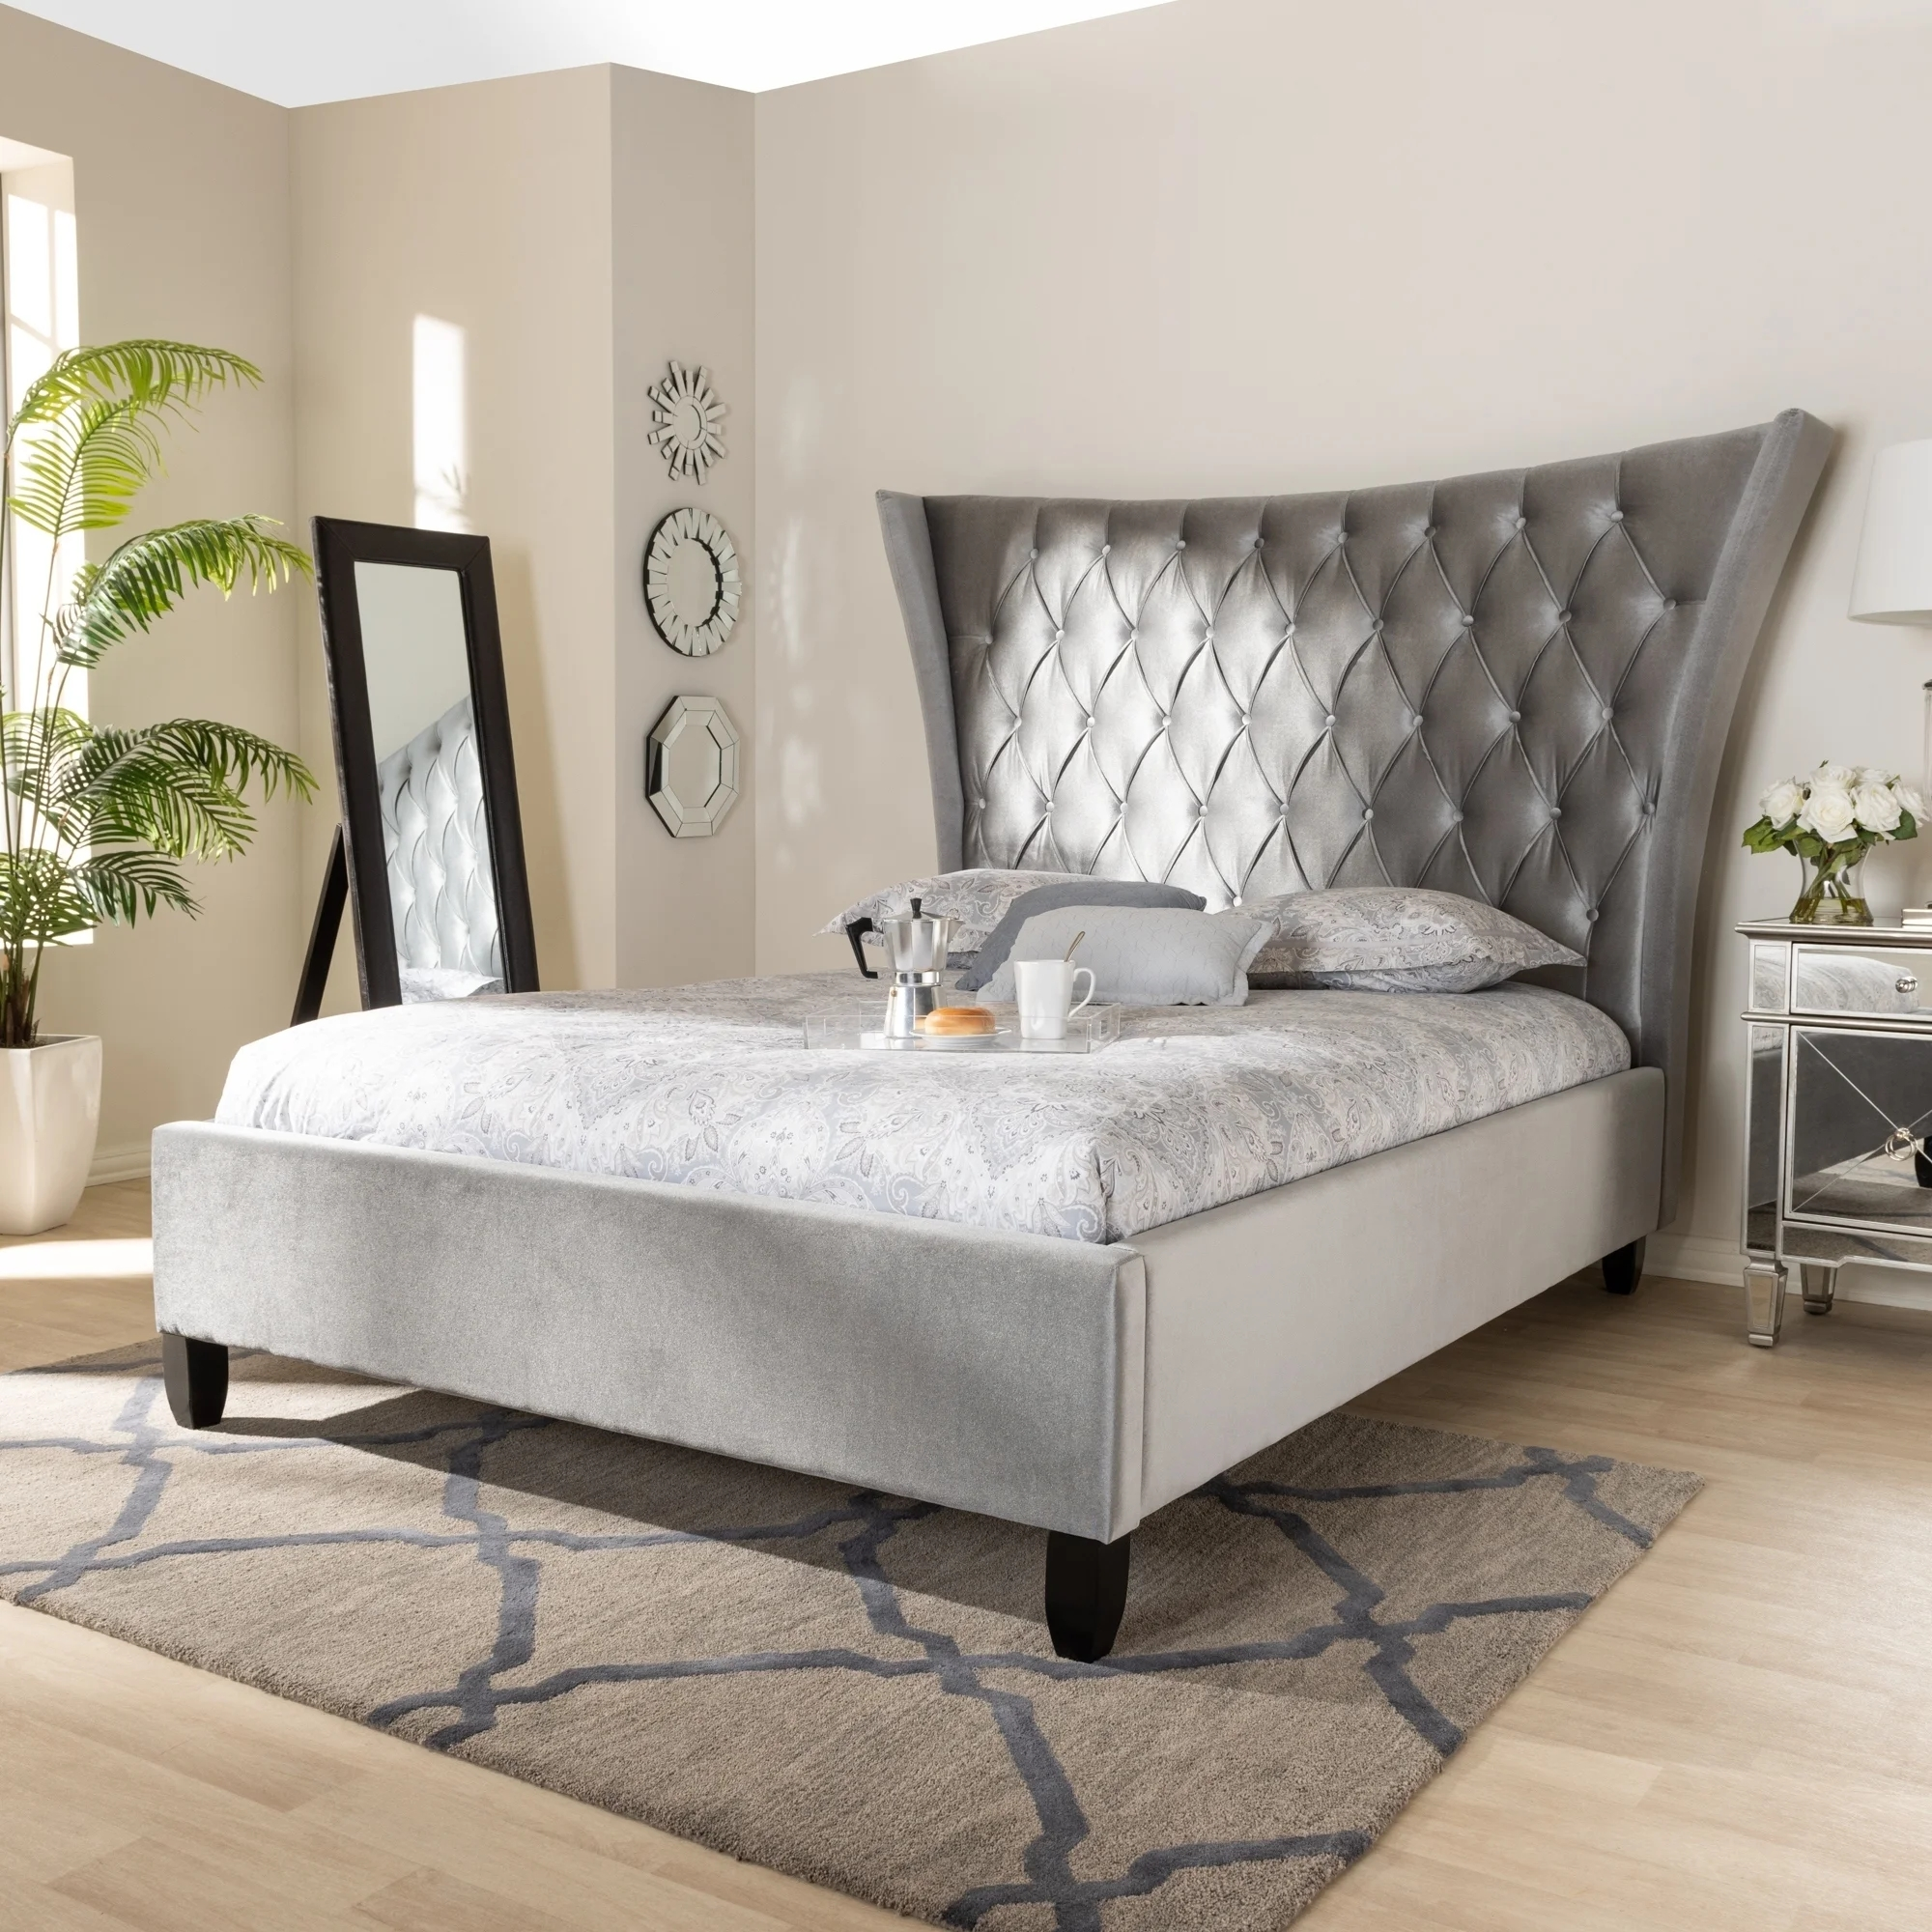 Modern Grey Luxury Velvet King Platform Wood Beds With Headboard Buy Beds Luxury Bed King Size Bed Product On Alibaba Com